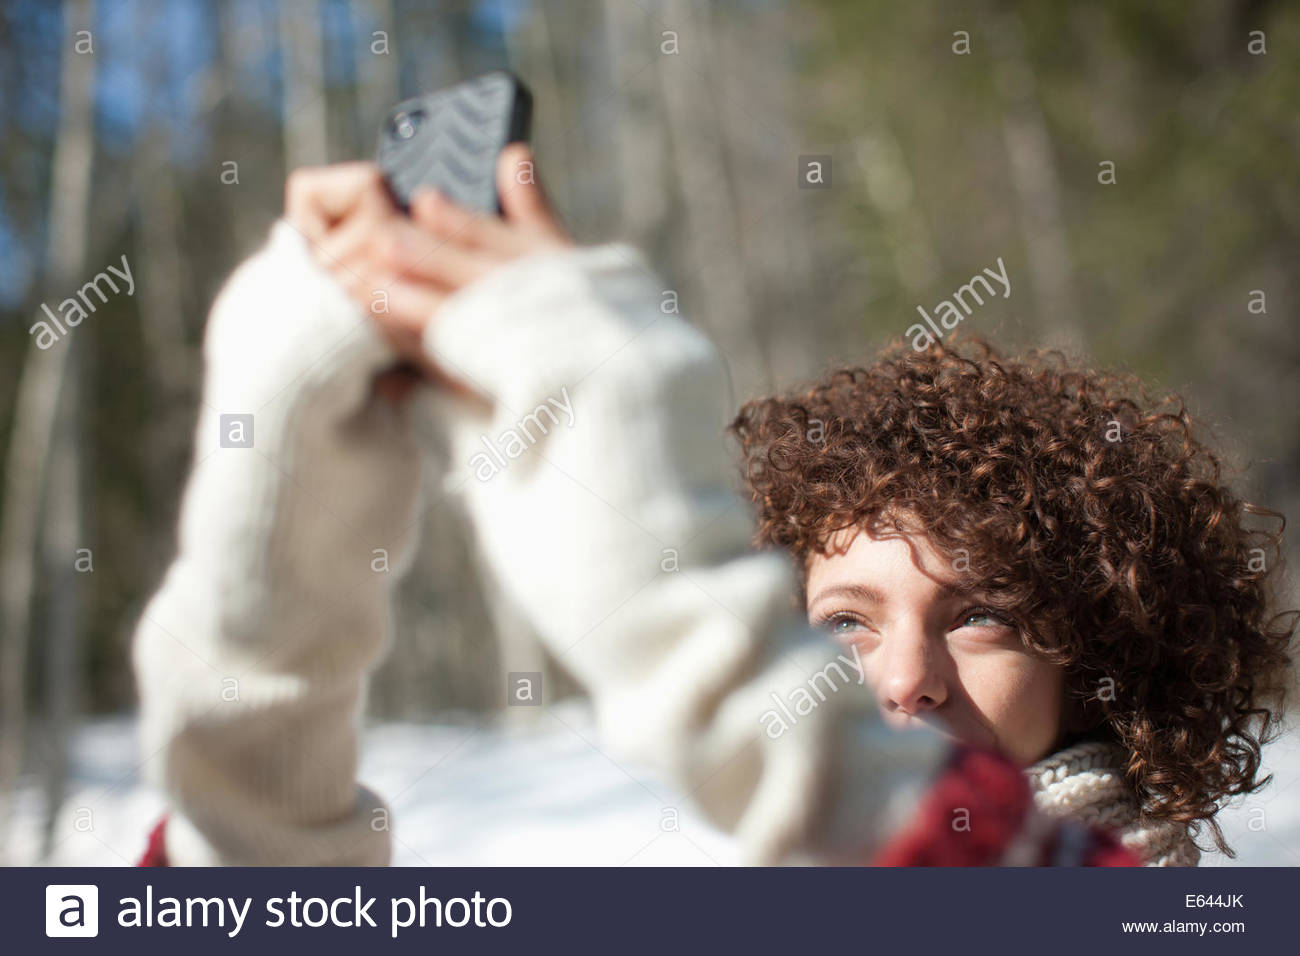 Woman taking photograph with cell phone - Stock Image